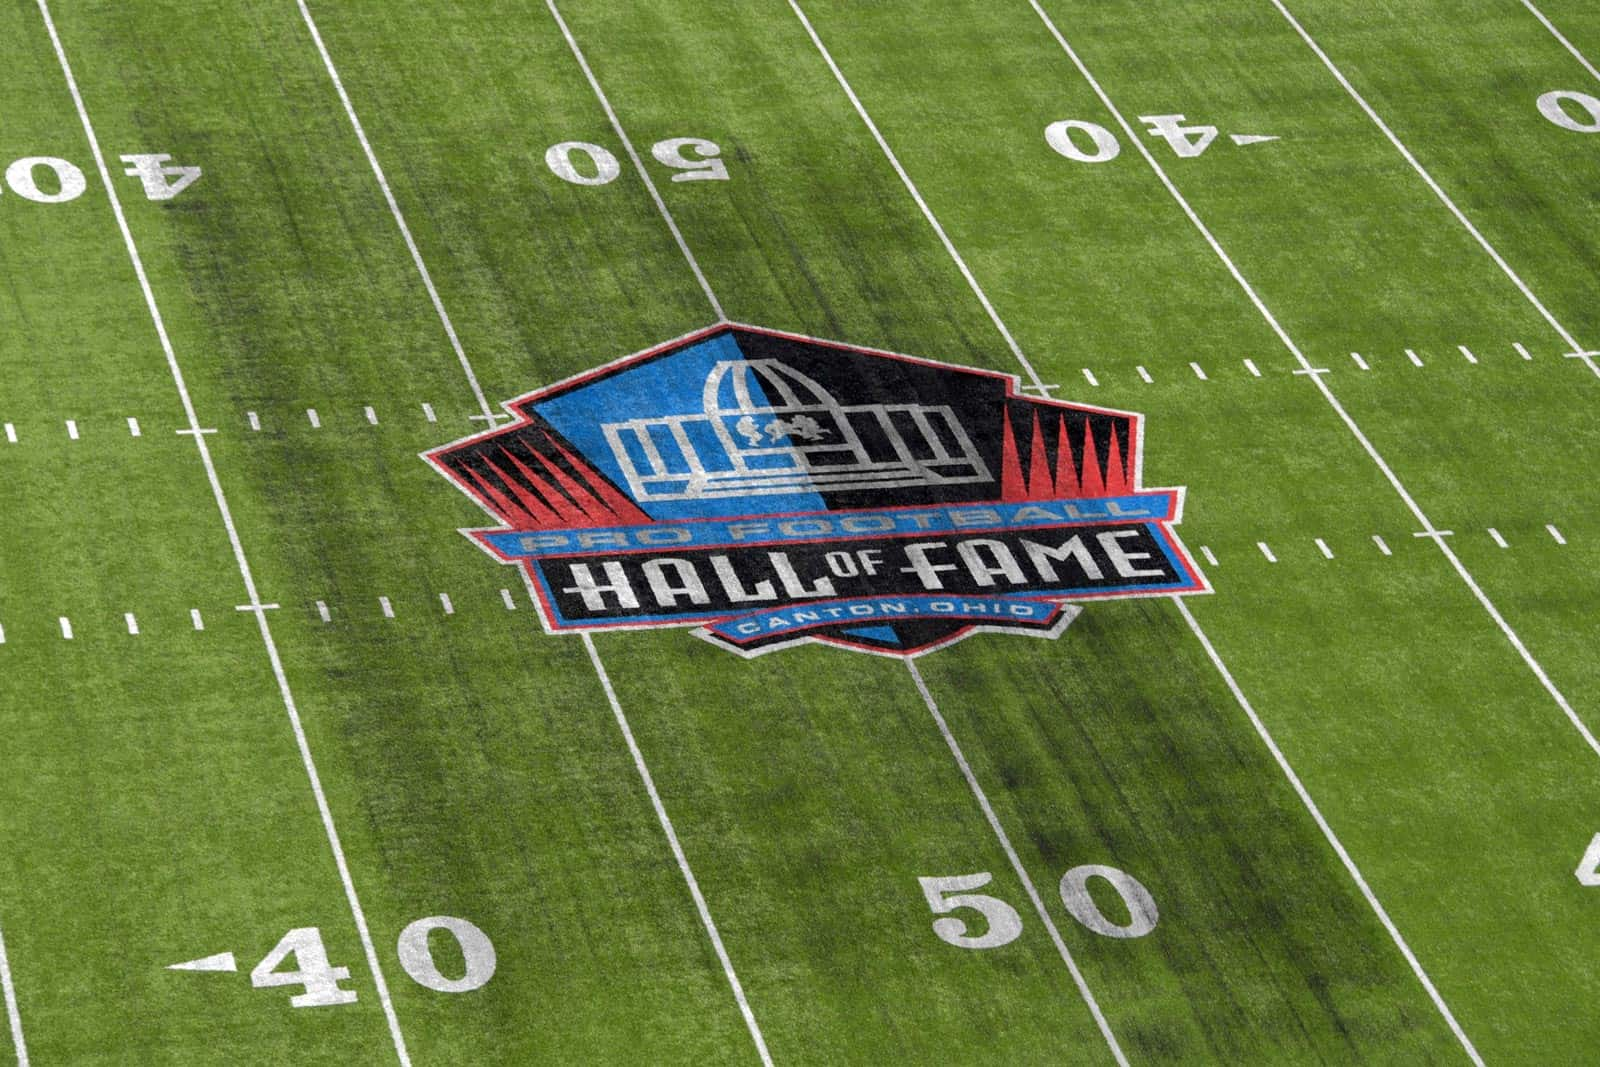 NFL/Hall of Fame Game